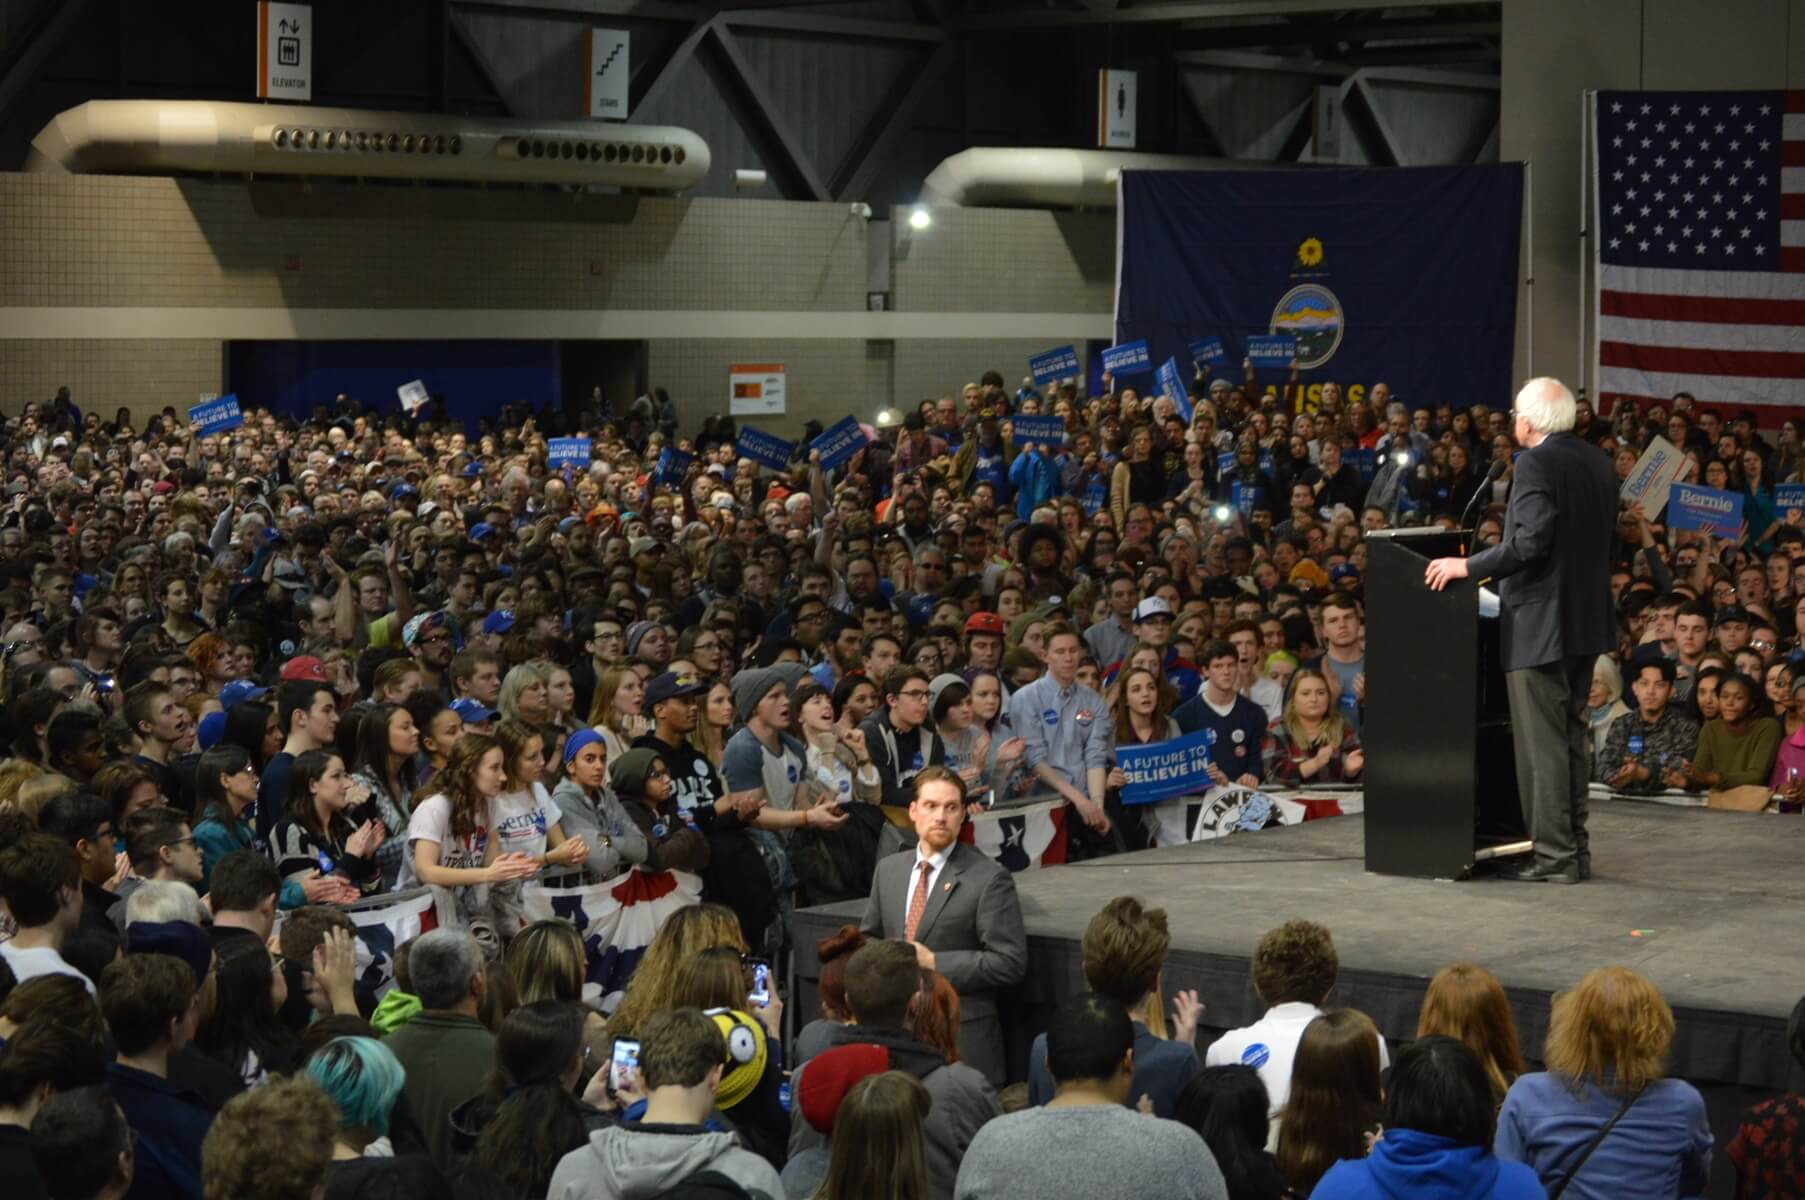 Sanders speaks to over 7,000 in Kansas City, many from Kansas